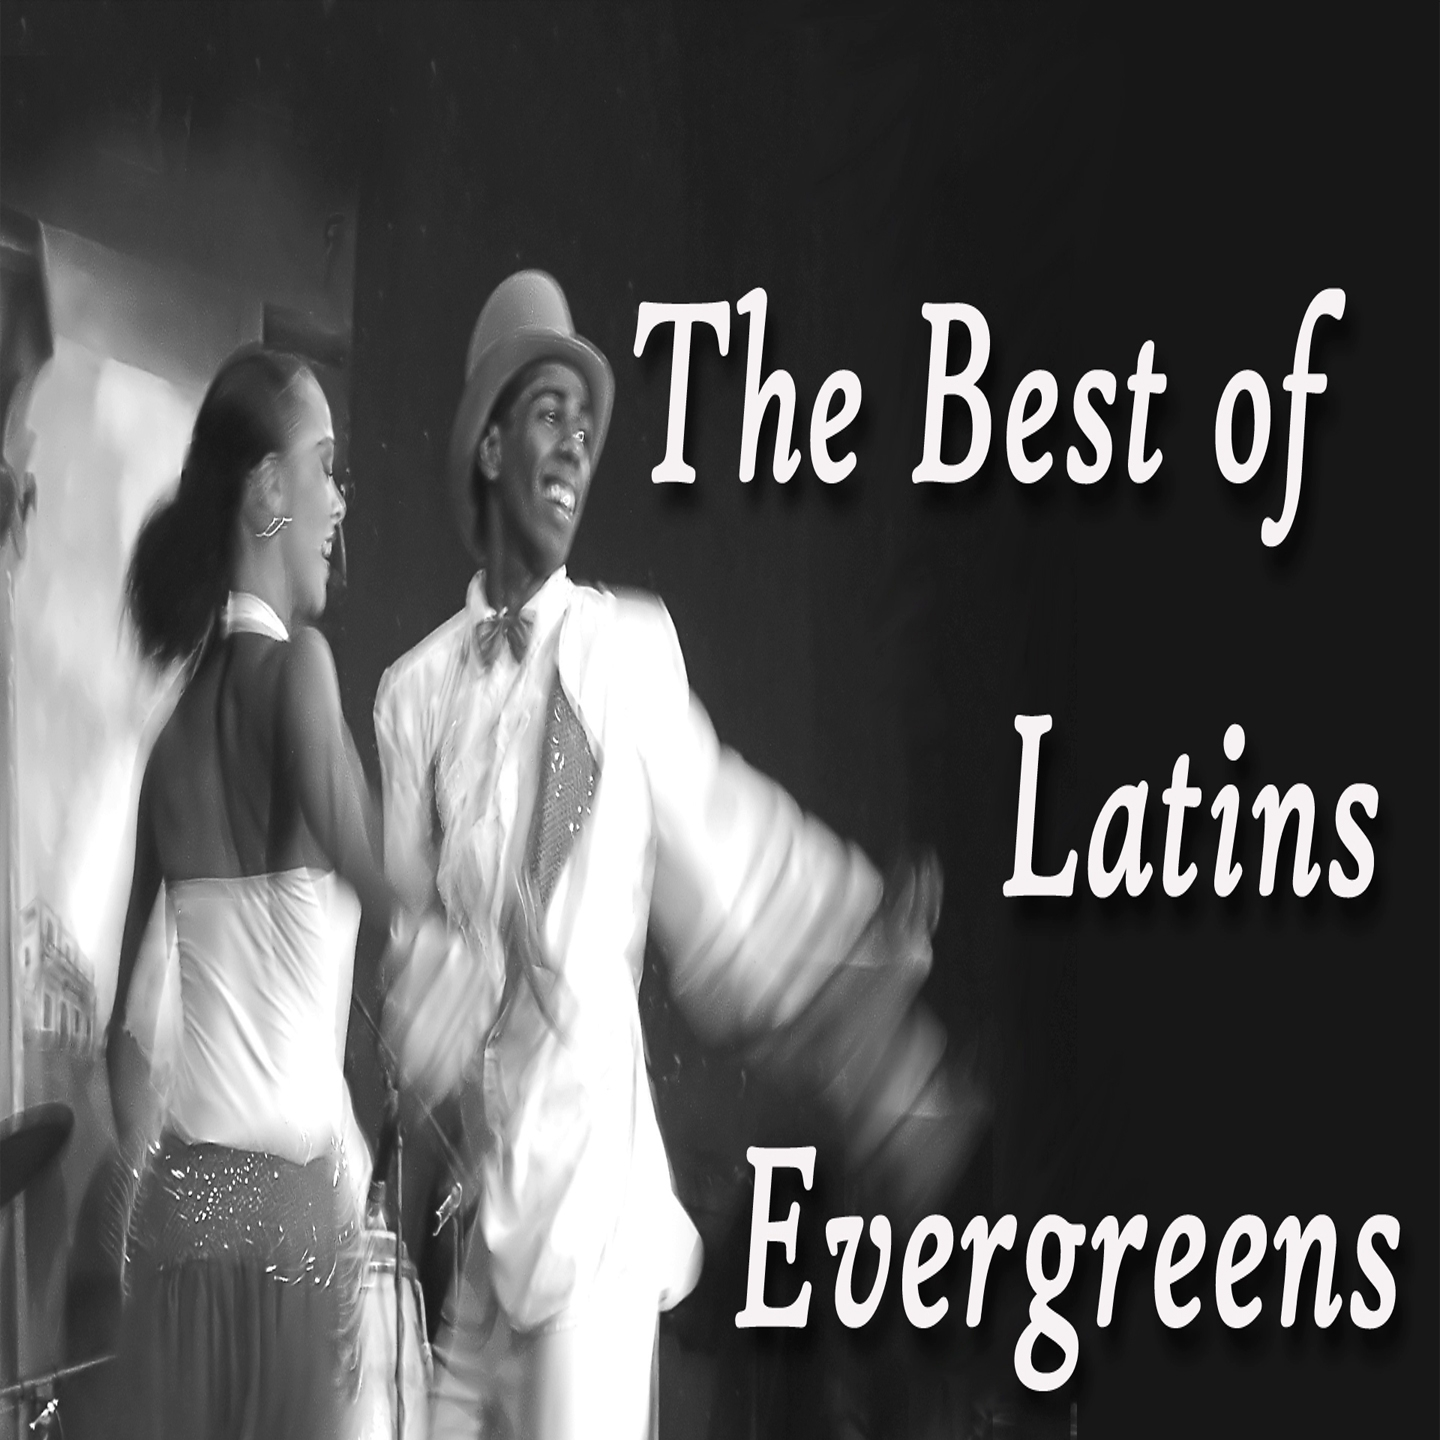 The Best of Latins Evergreens